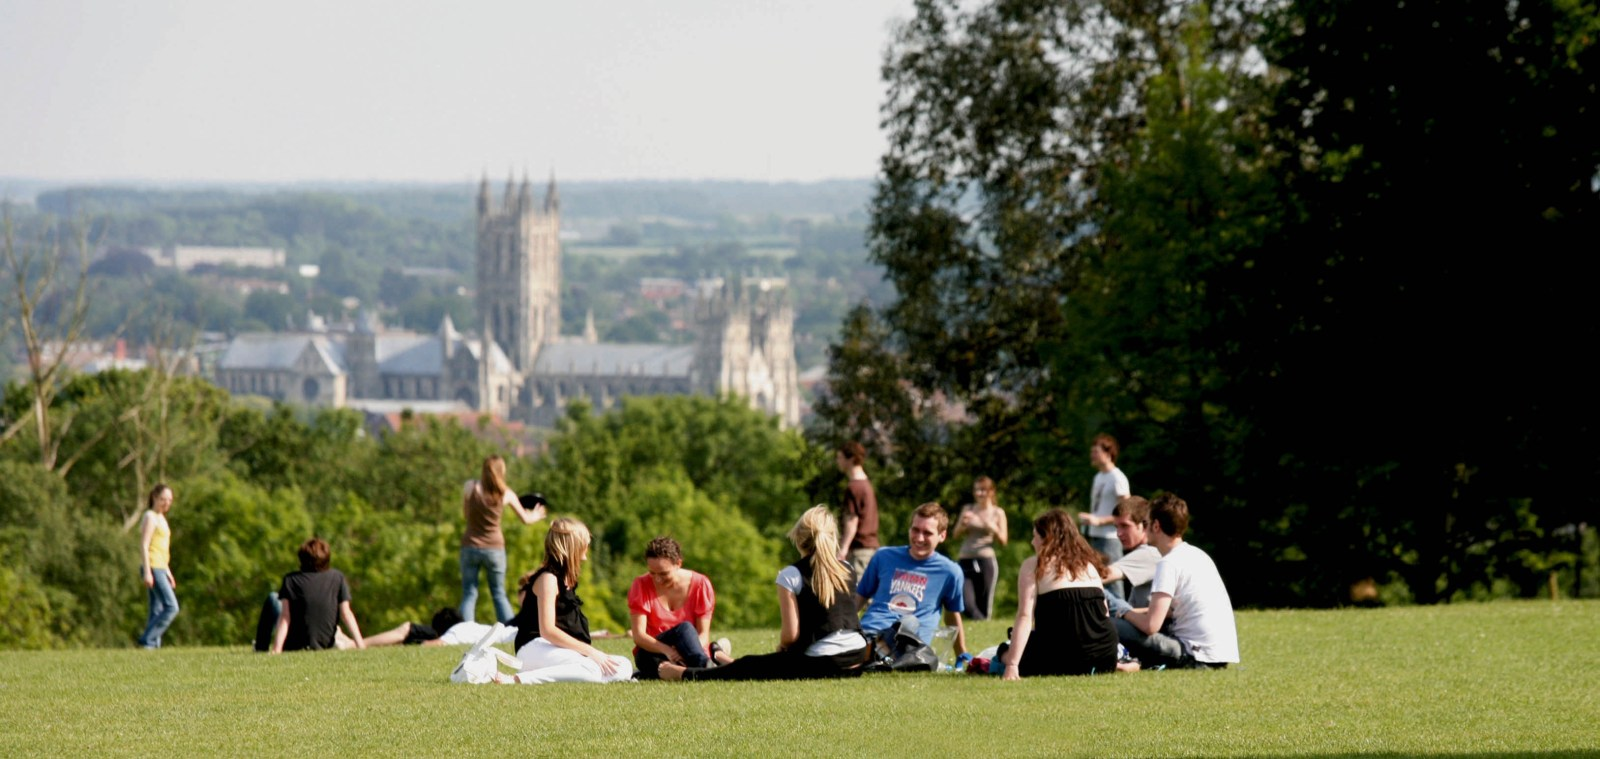 There are many ways you can prepare for starting at UKC and these can save you time in the long run. Here are some lifesaving University of Kent hacks!